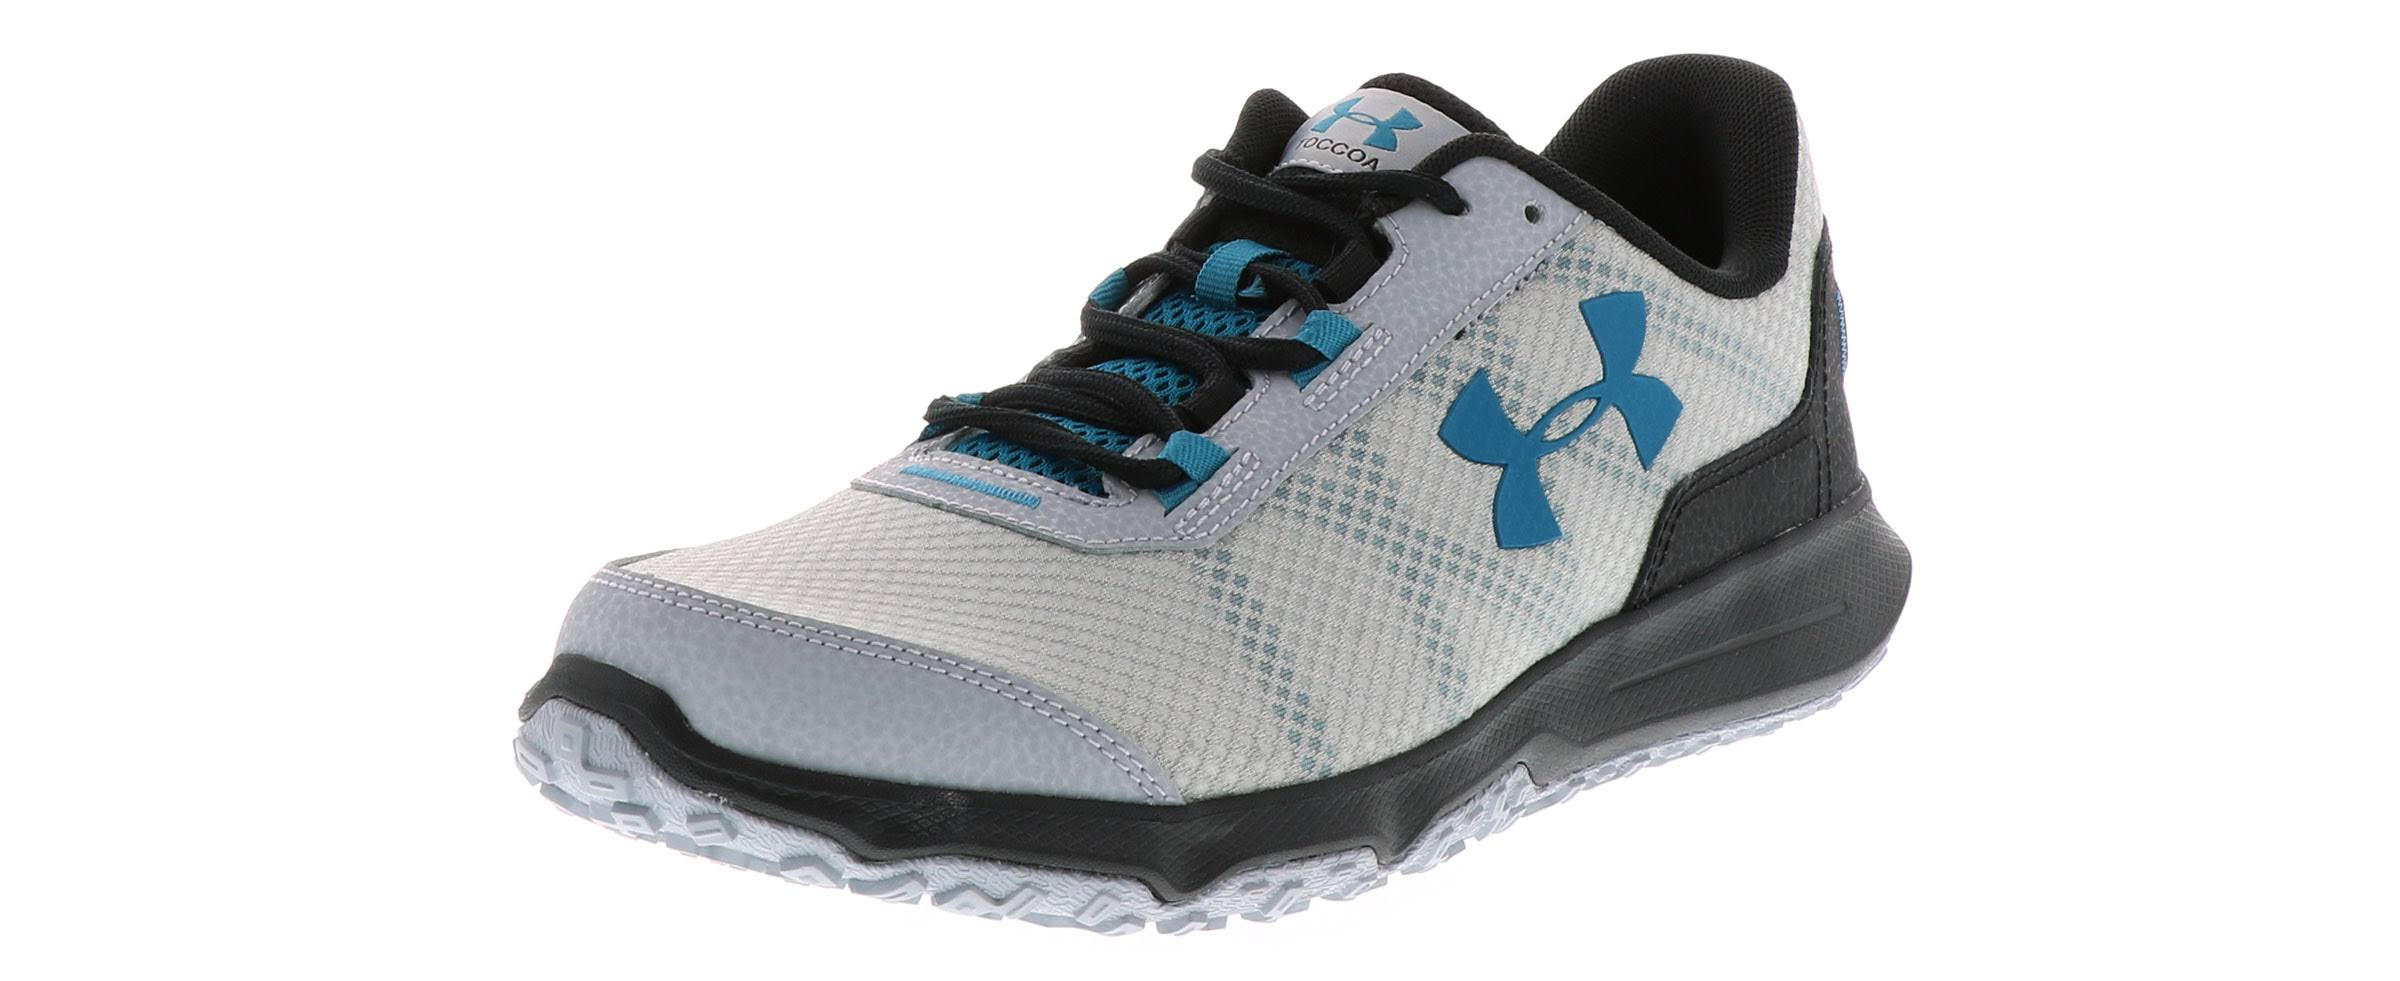 Under Armour Toccoa Sneaker Mens